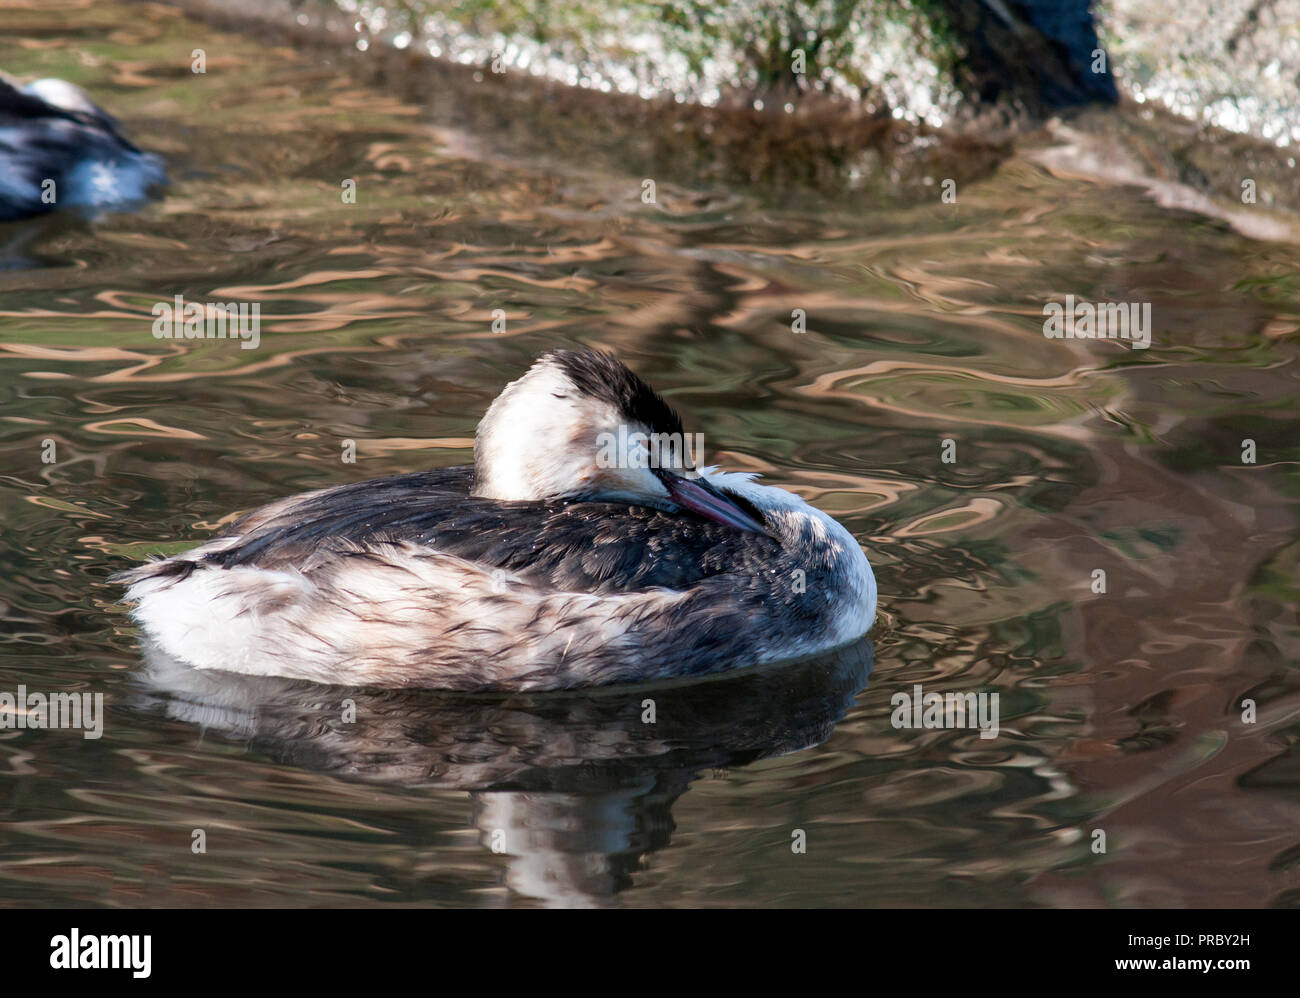 Great Crested Grebe (Podiceps cristatatus).Adult in winter plumage. - Stock Image